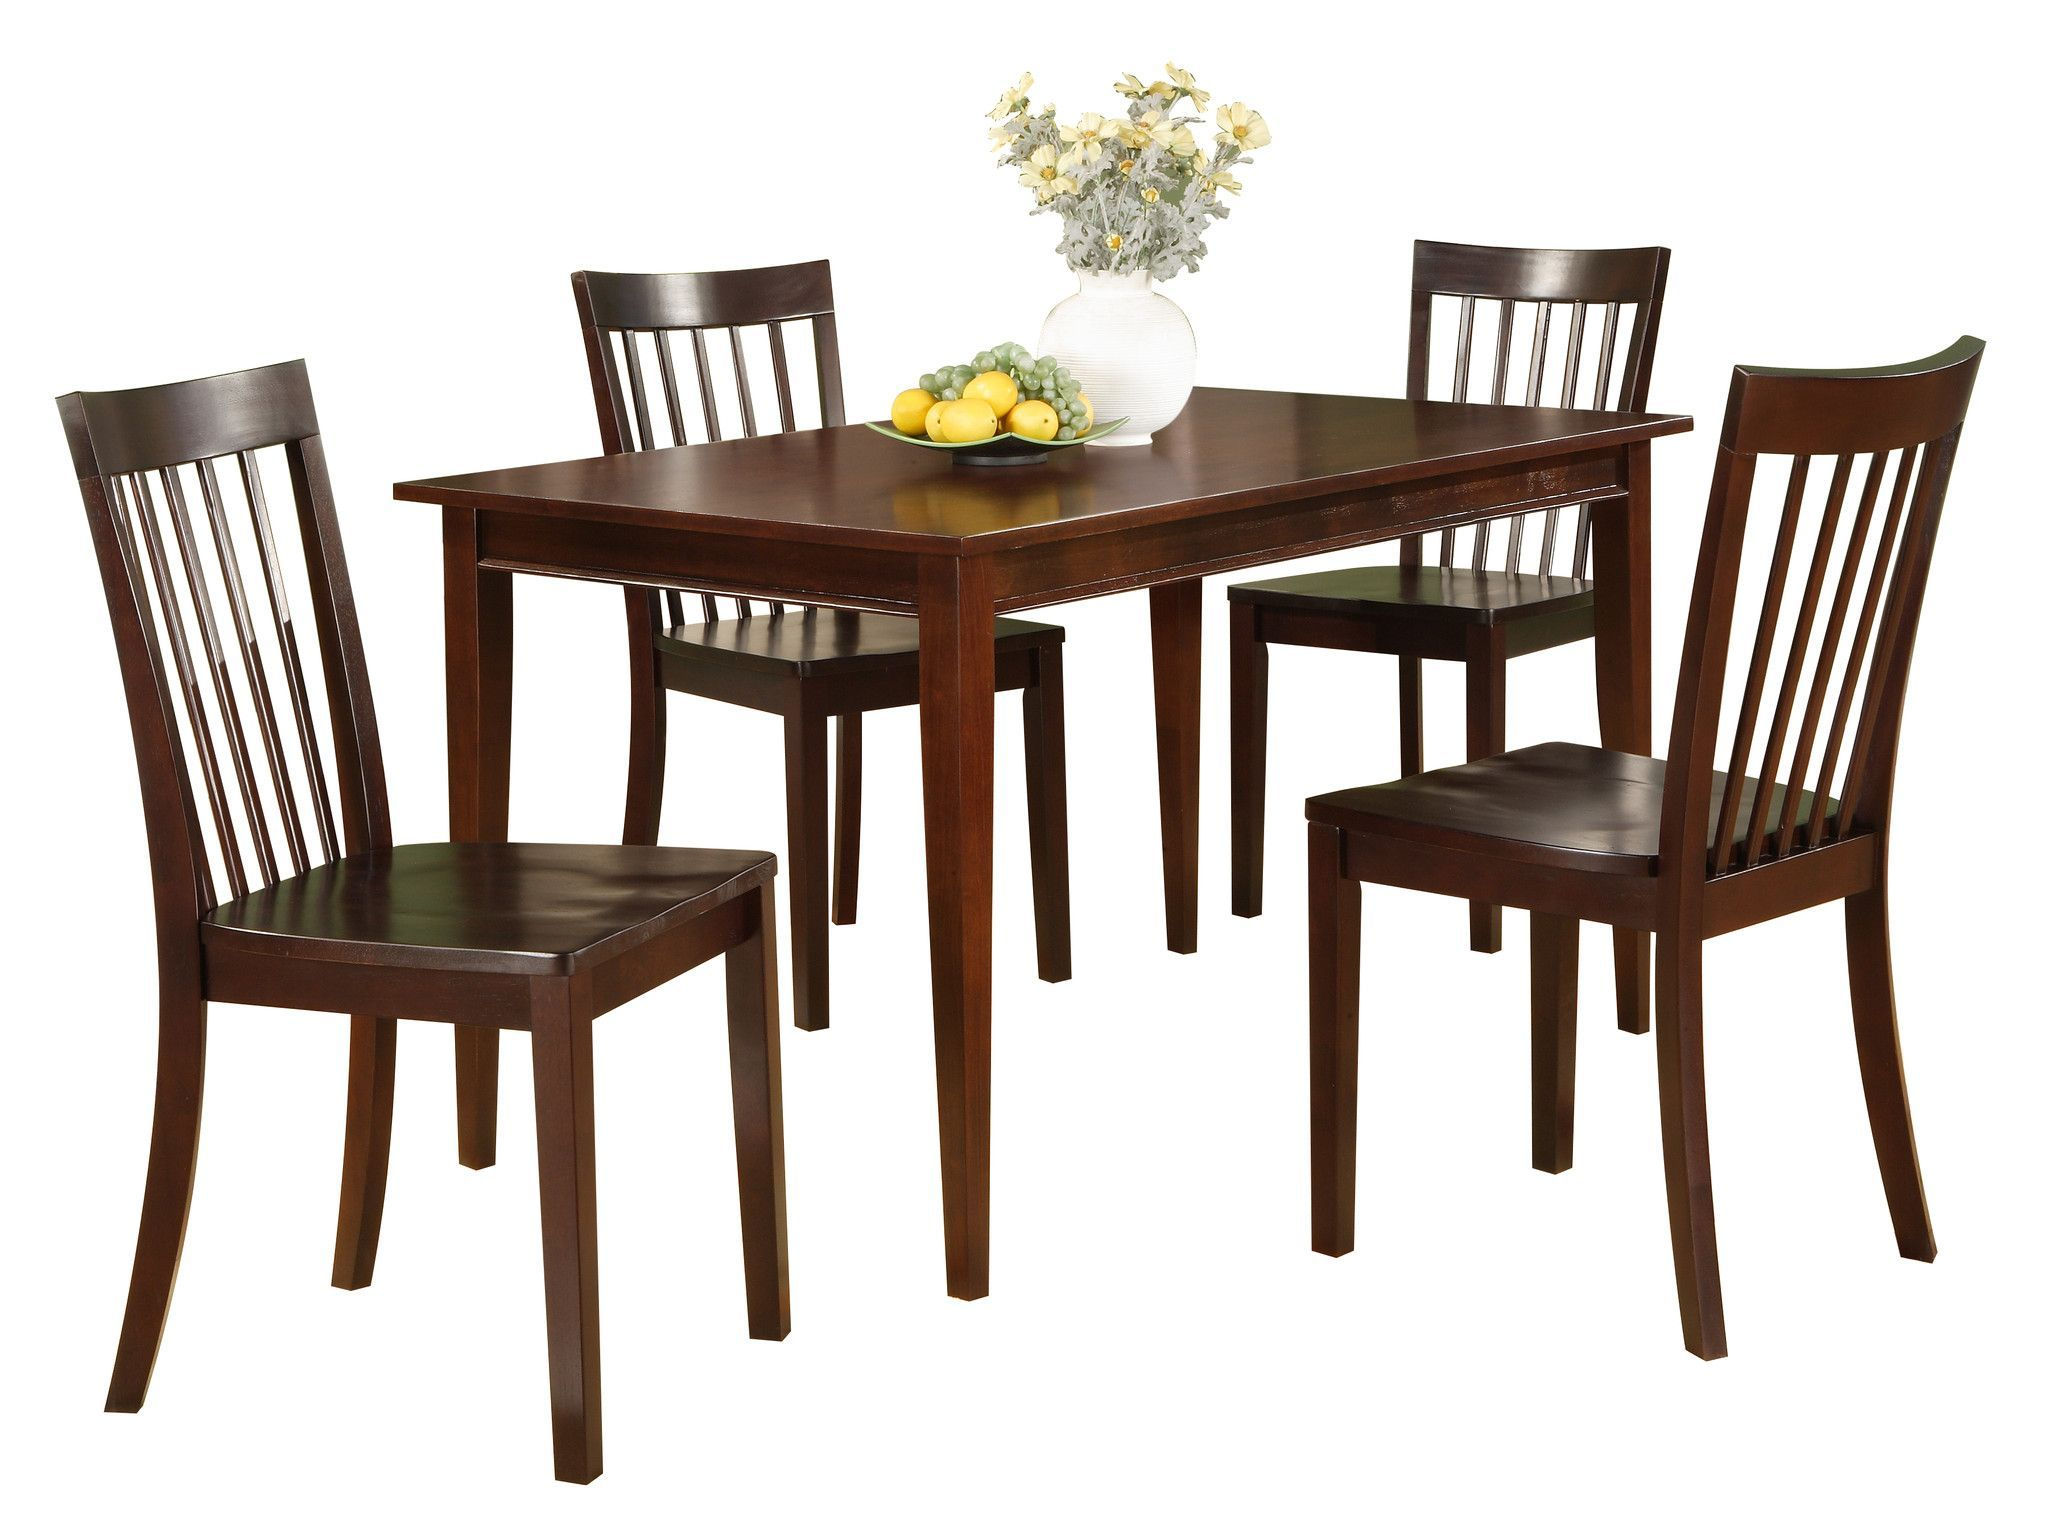 Tanya Dining Set Cherry Wood Rectangular Dining Table Chairs